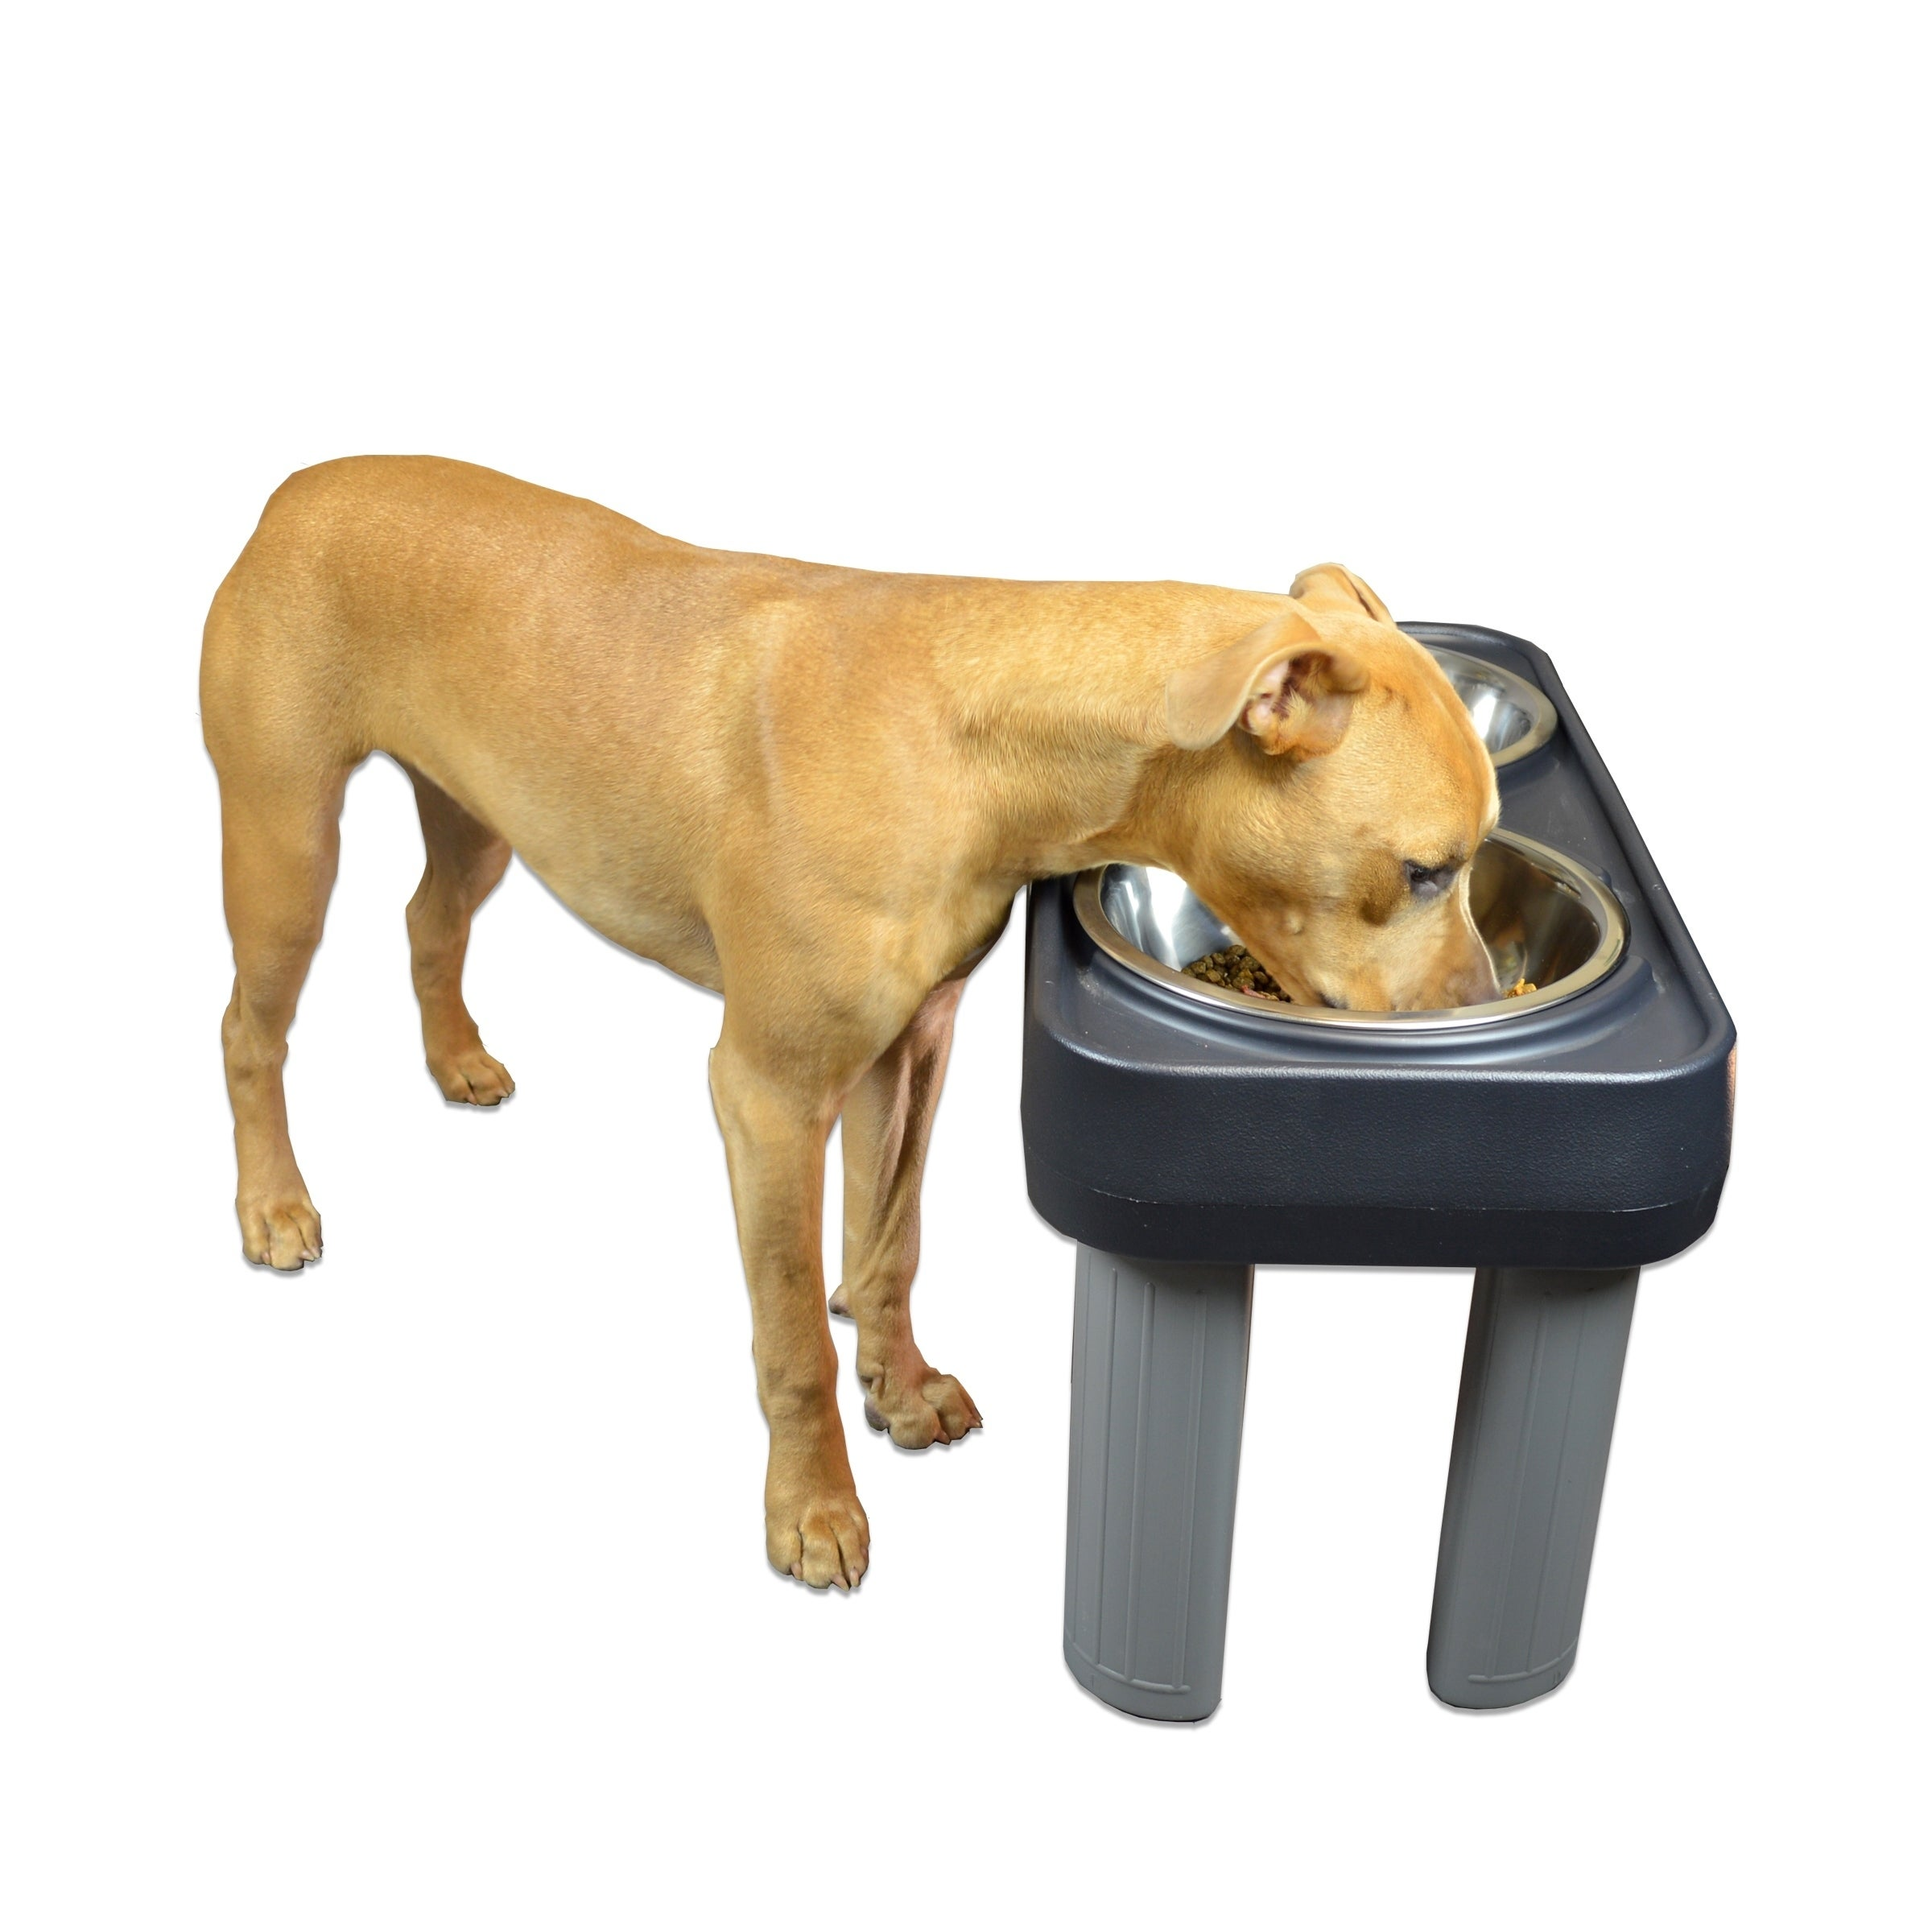 pcr best dog petsafe meal rated pet reviews automatic product feeder feeders customer in image programmable helpful